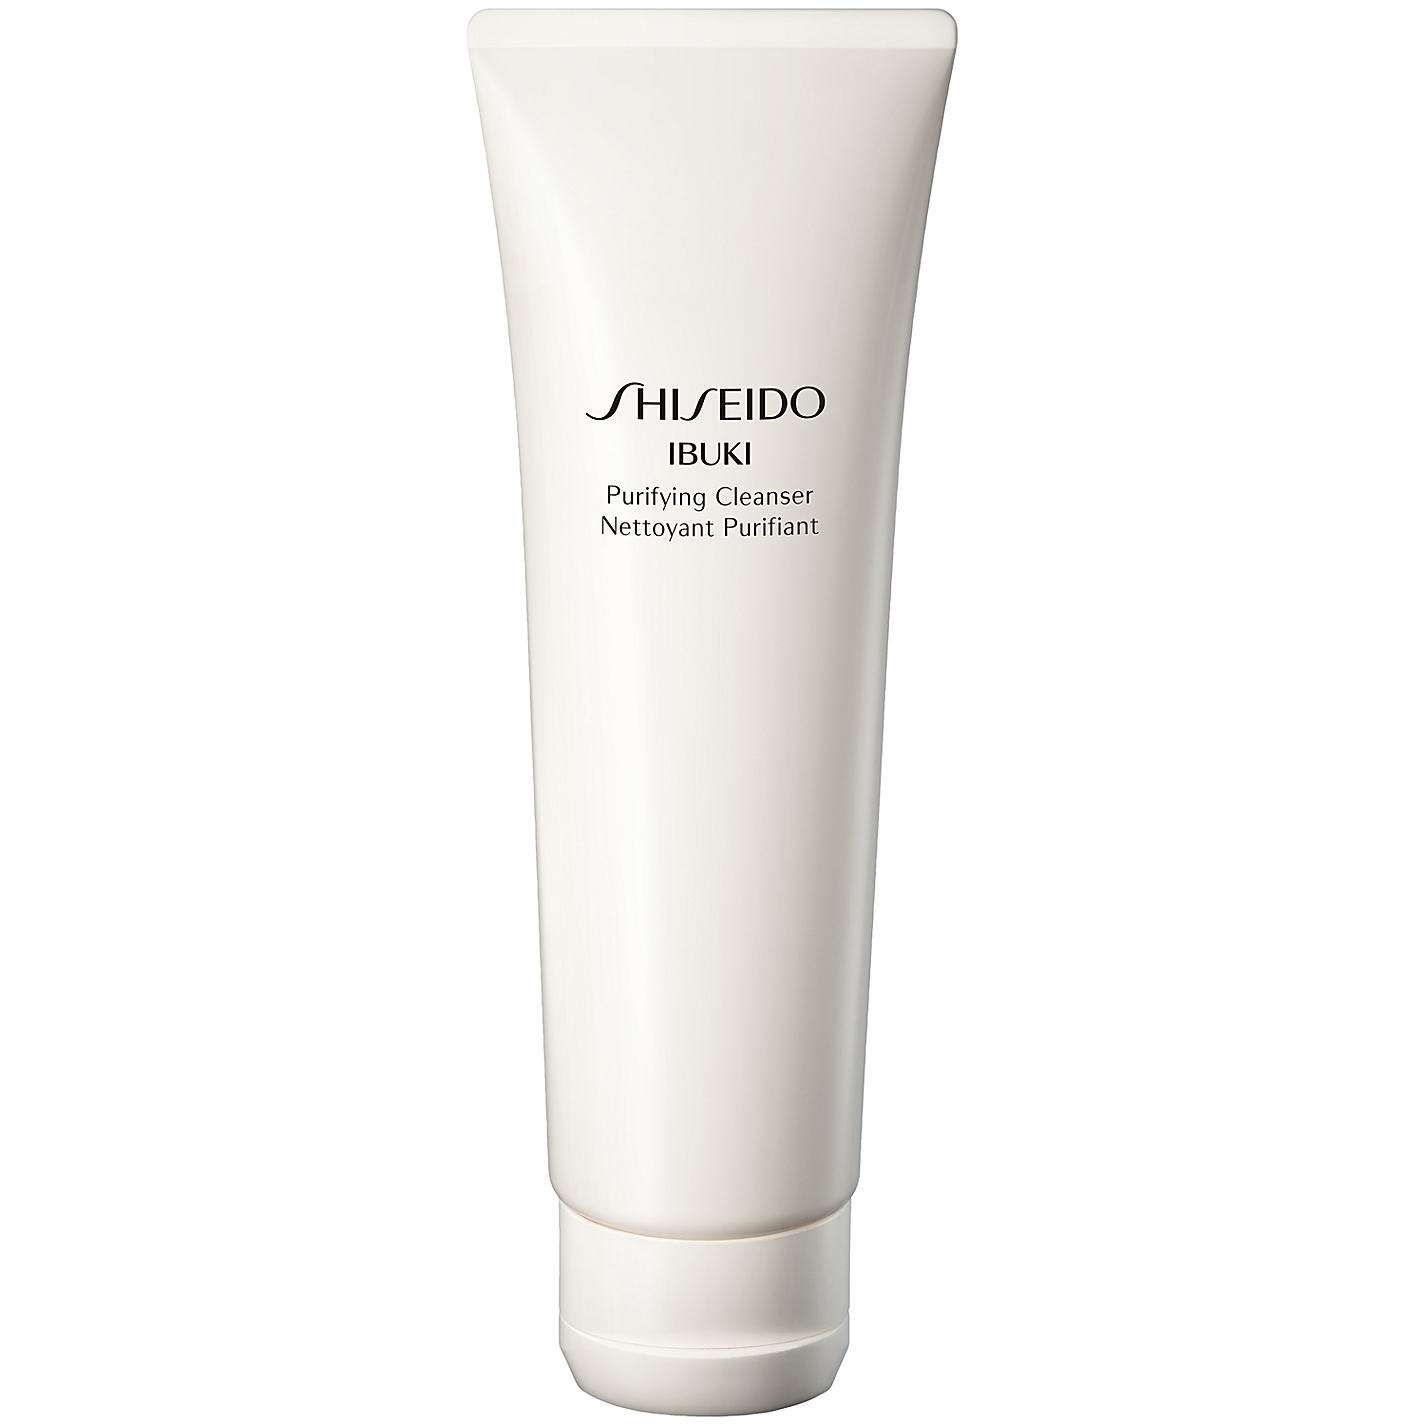 Shiseido Ibuki Purifying Cleanser  , $30